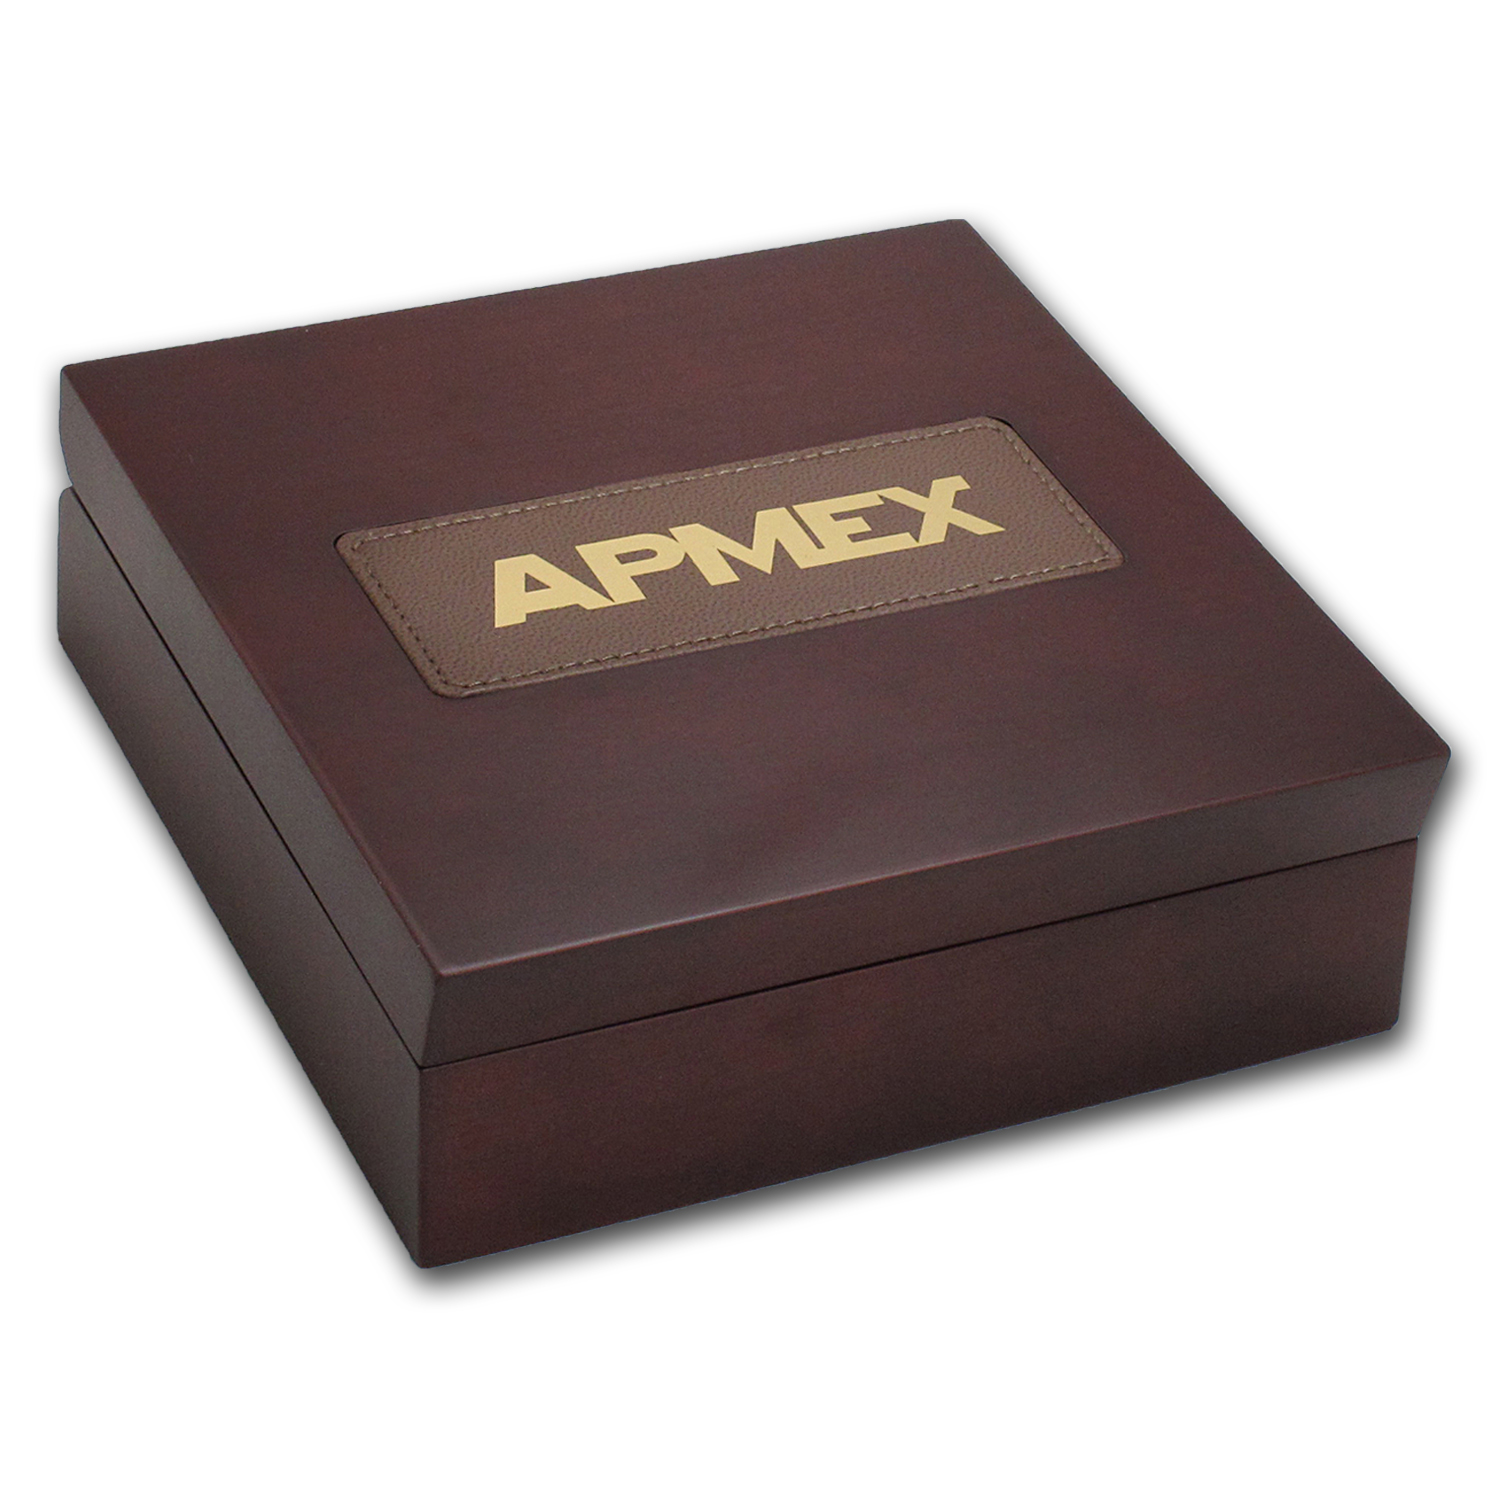 APMEX Wood Gift Box - 100 Gram PAMP Suisse Gold Bar (w/Assay)